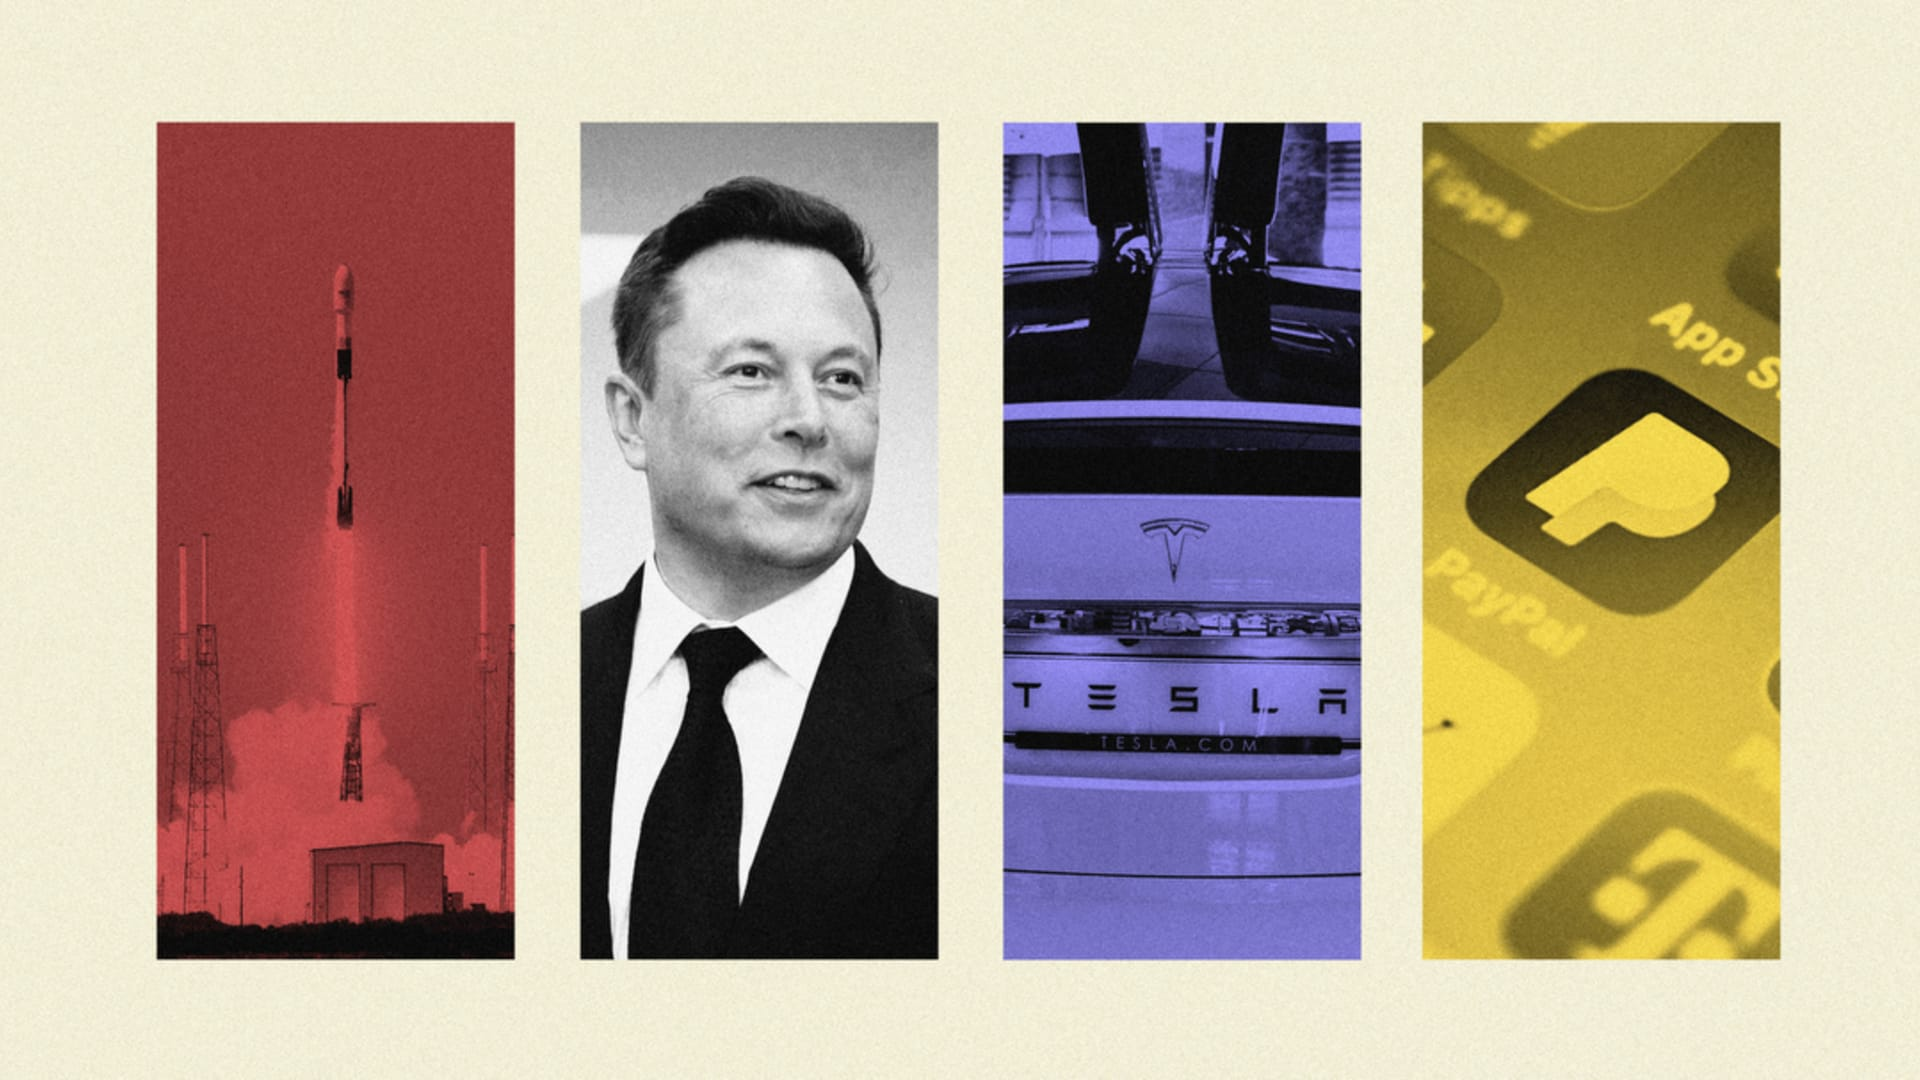 Elon Musk, co-founder and CEO of Tesla and founder and CEO of SpaceX.